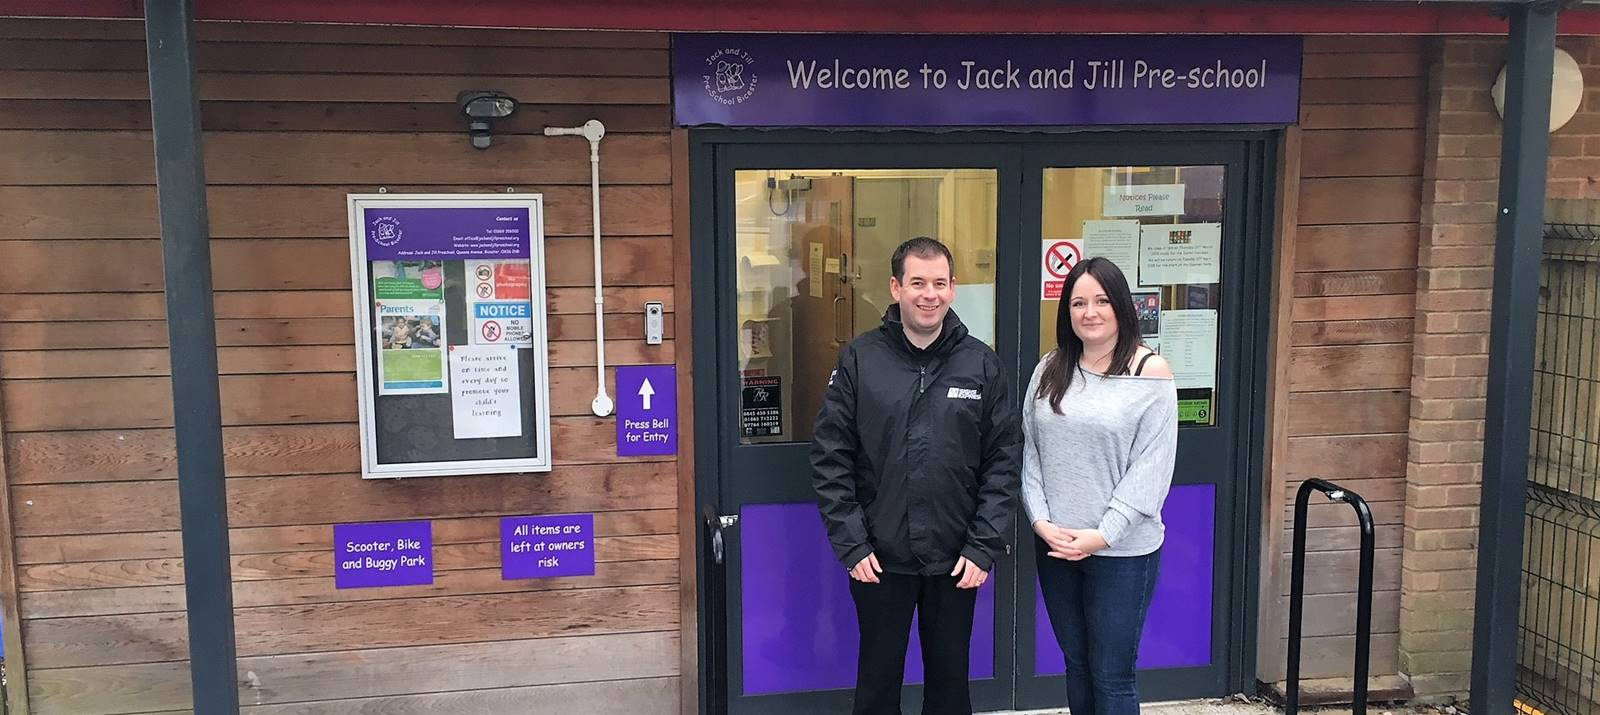 Signs Express working with Jack & Jill pre-school